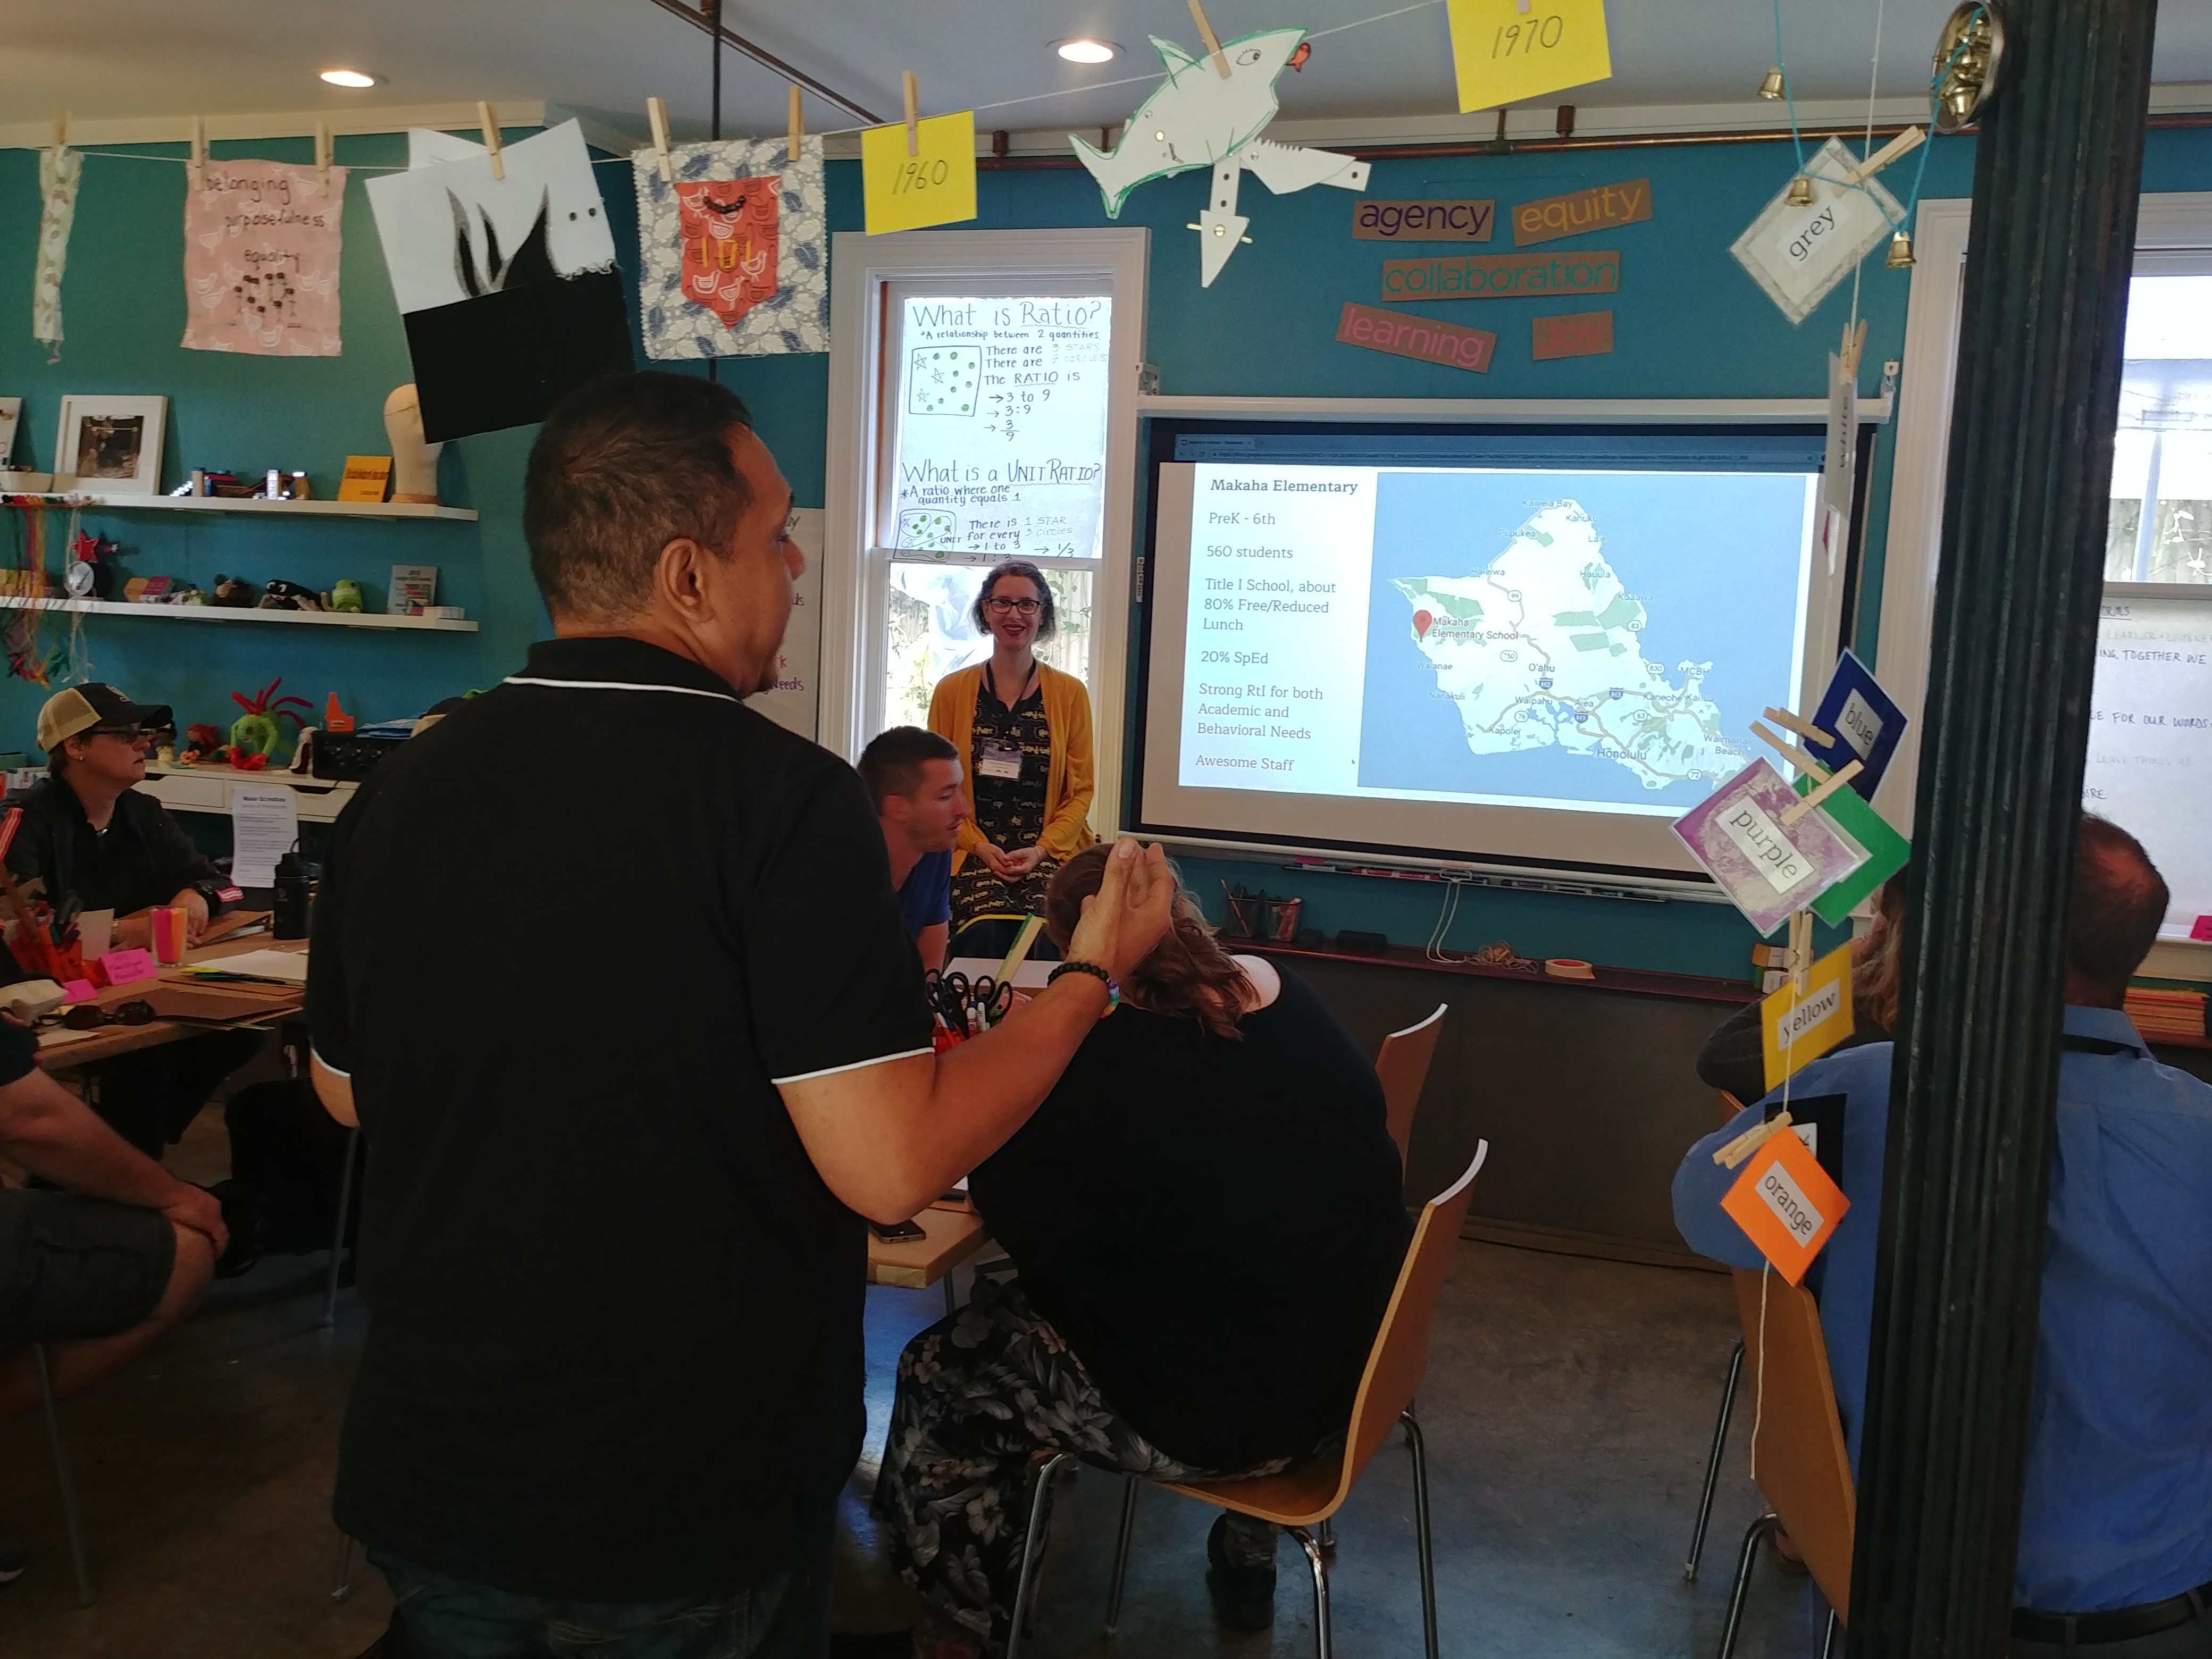 Two workshop participants give an ignite talk while a map of their home state is projected behind them.